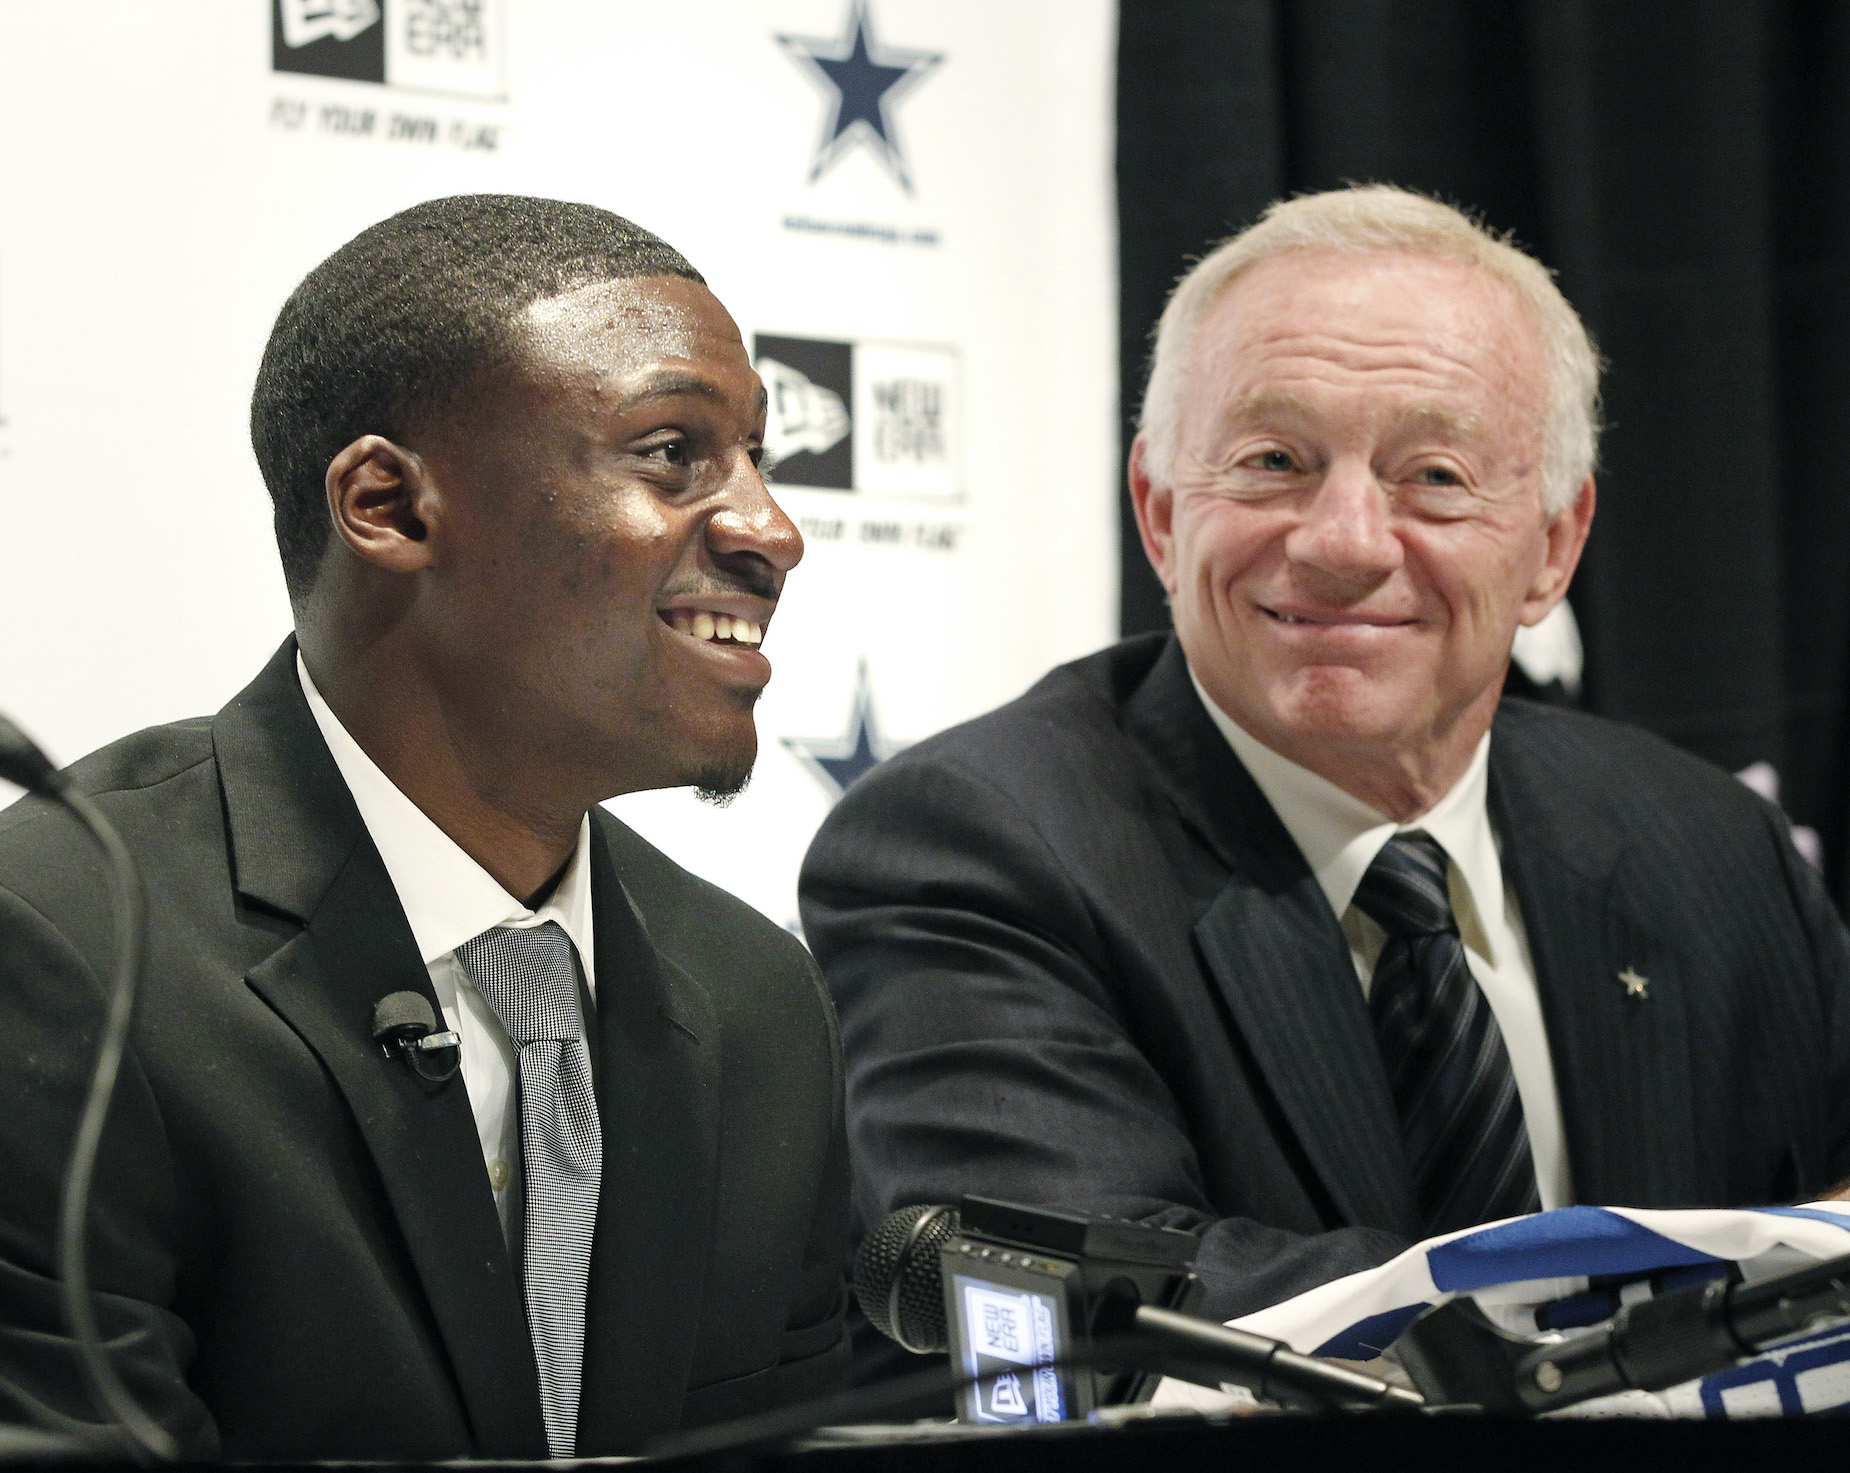 Jerry Jones Once Wasted the Sixth Overall Draft Pick on a Bust Who Blew Off the Wonderlic Test